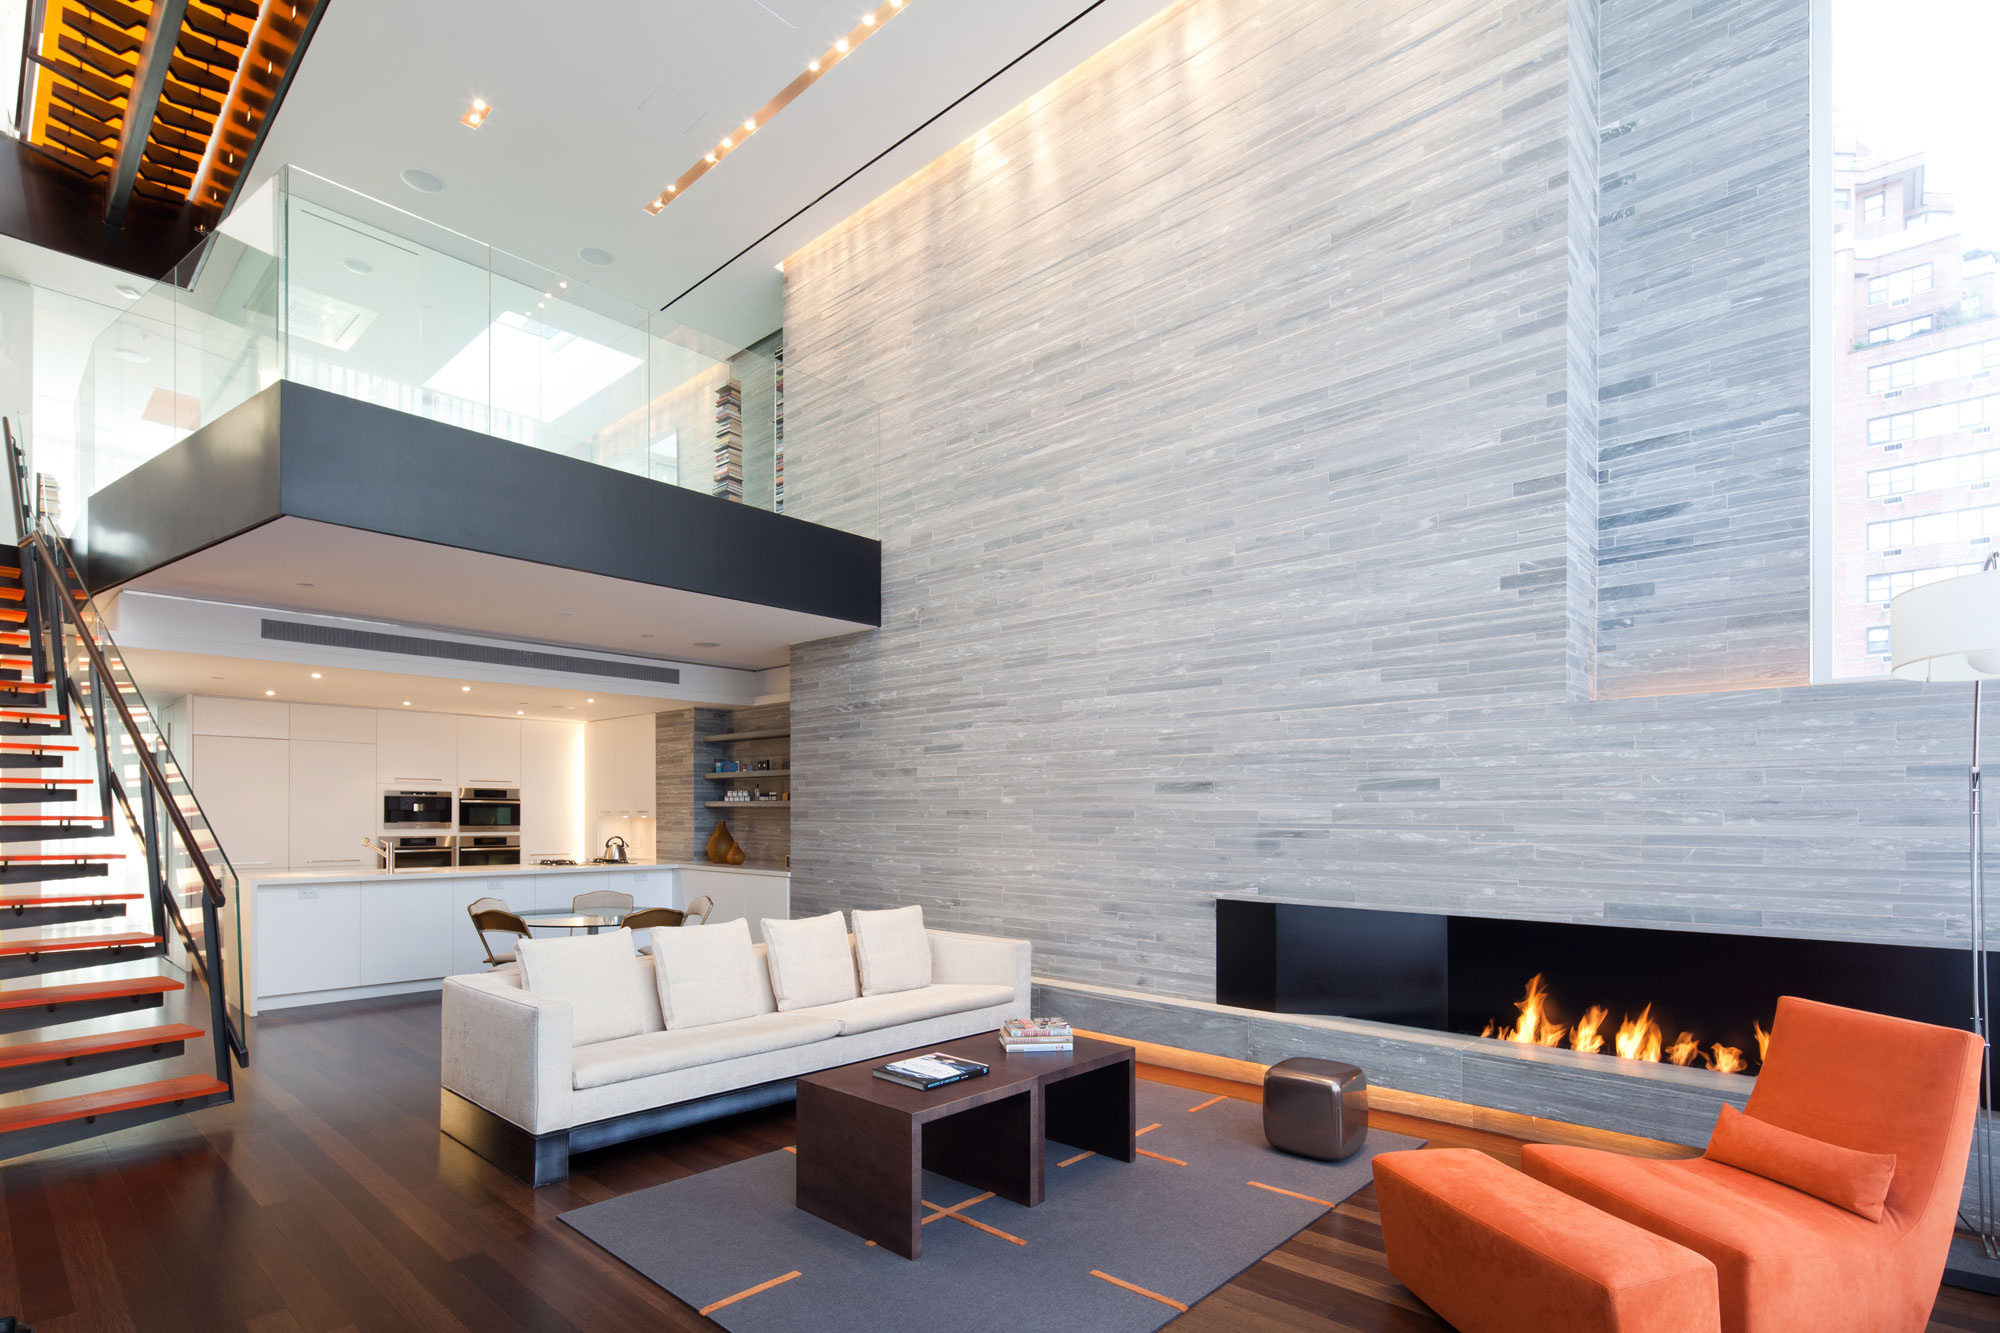 Luxury penthouse in new york homedezen for Expensive penthouses in nyc